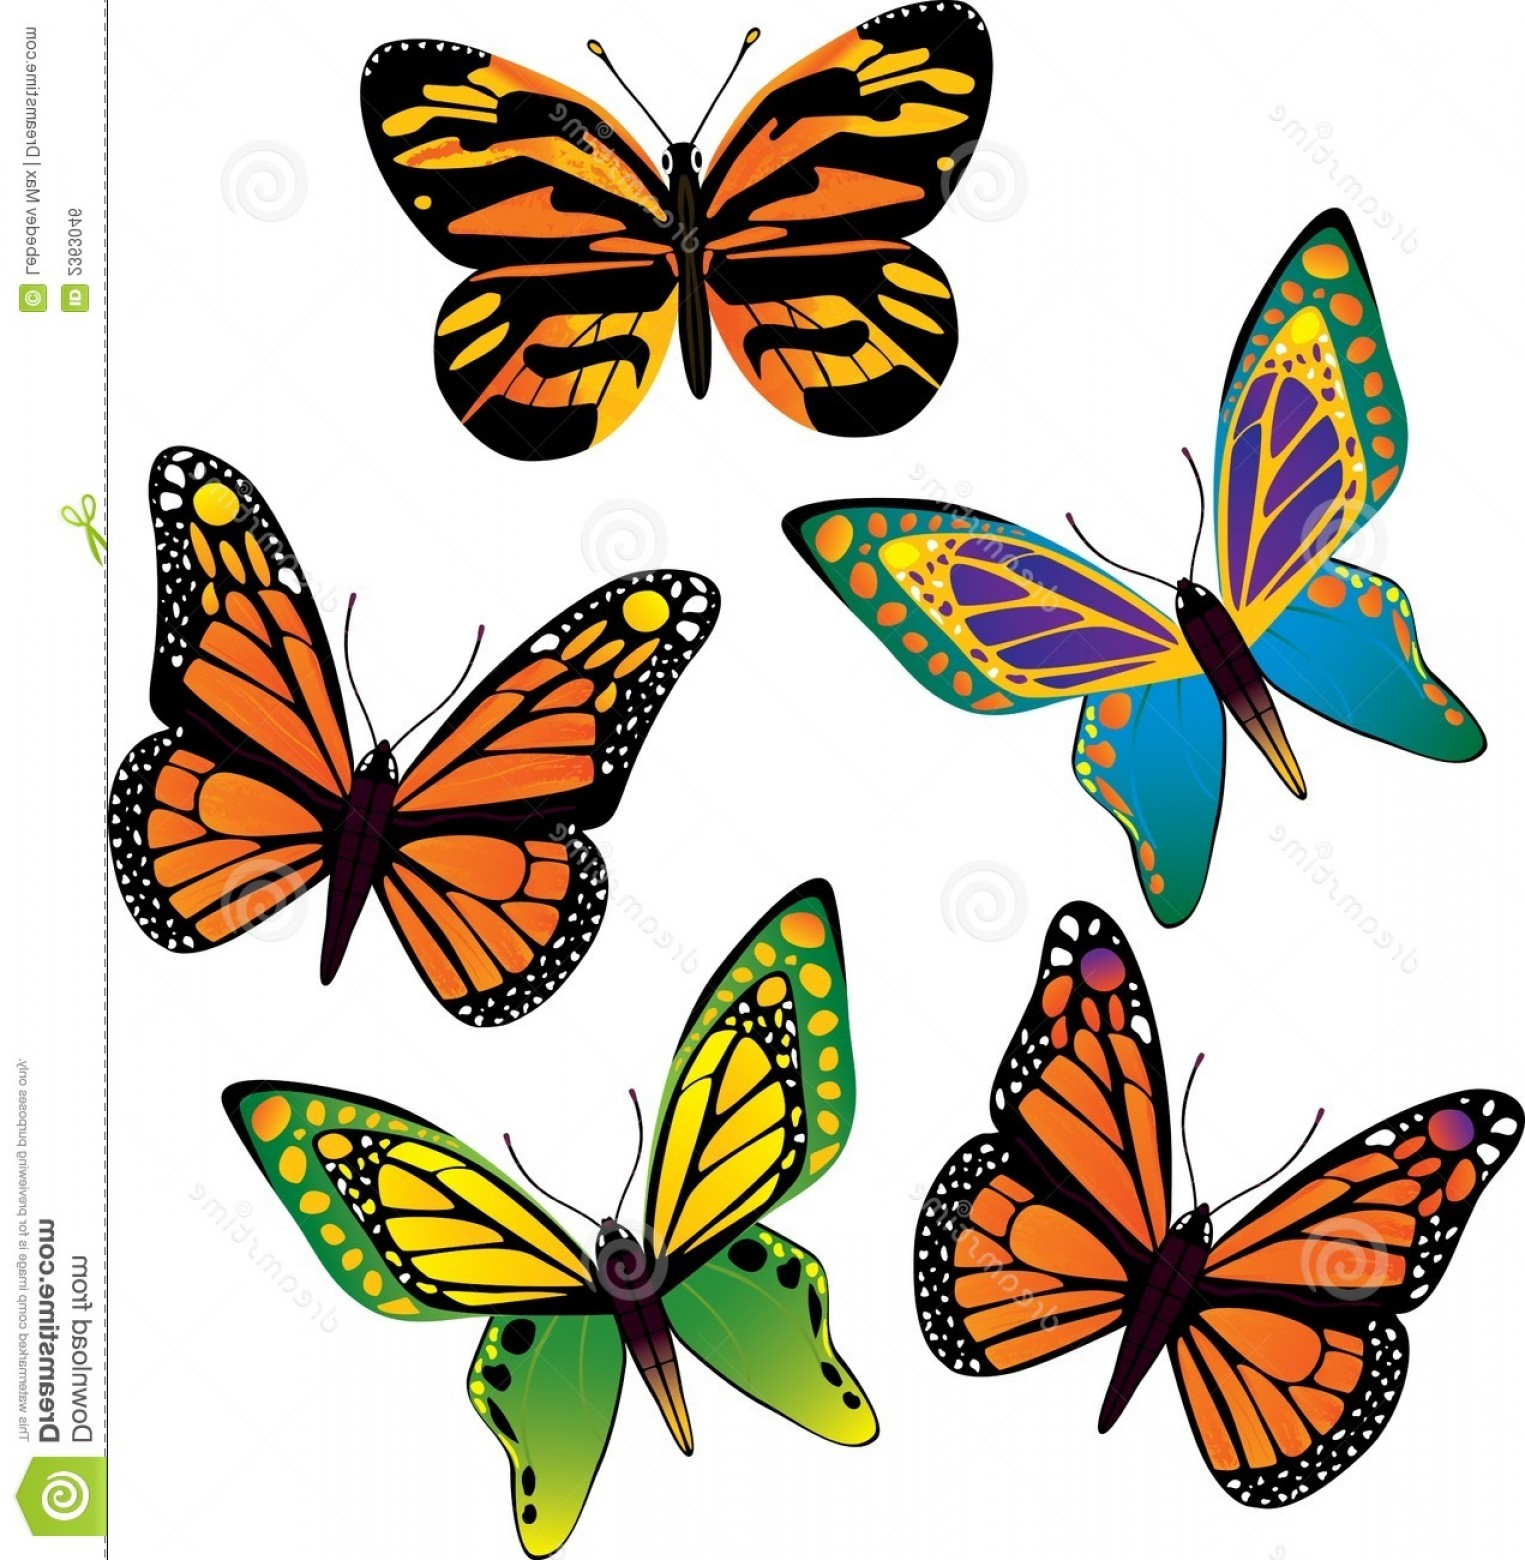 Vector Butterfly Clip Art: Royalty Free Stock Image Vector Butterfly Image